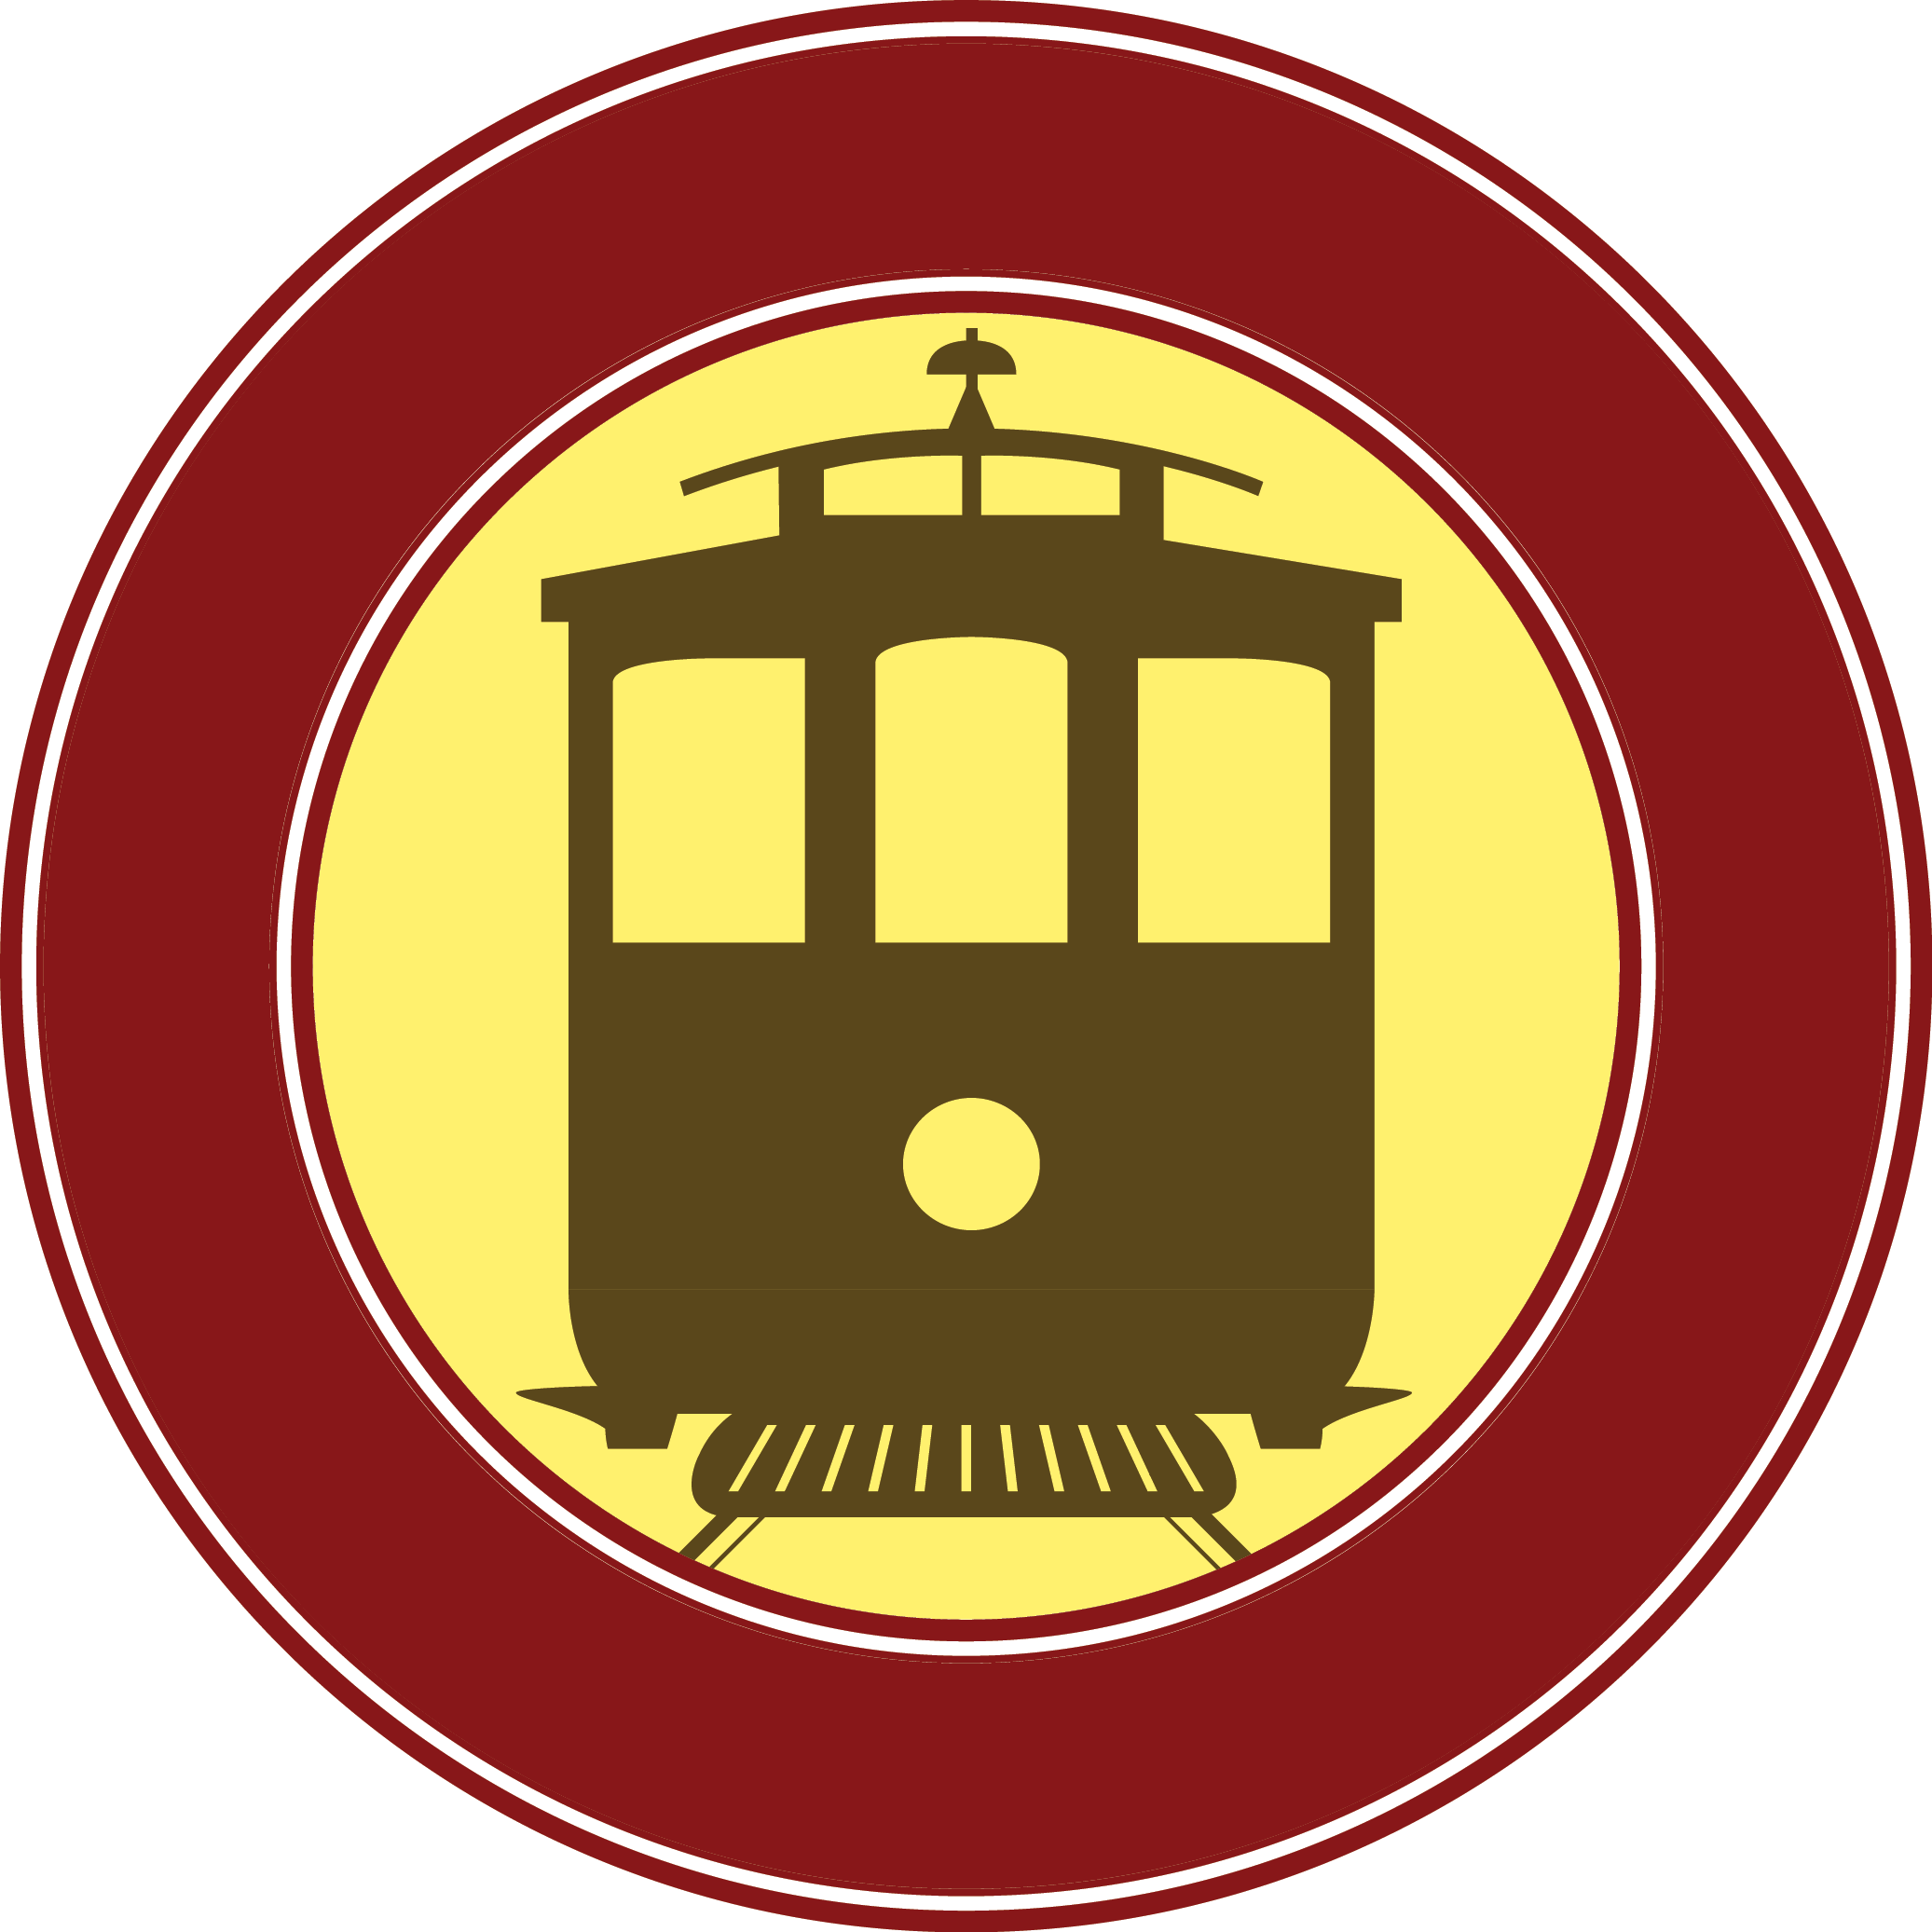 Trolley car clipart image royalty free stock Trolley Car Clipart 36557 | LOADTVE image royalty free stock